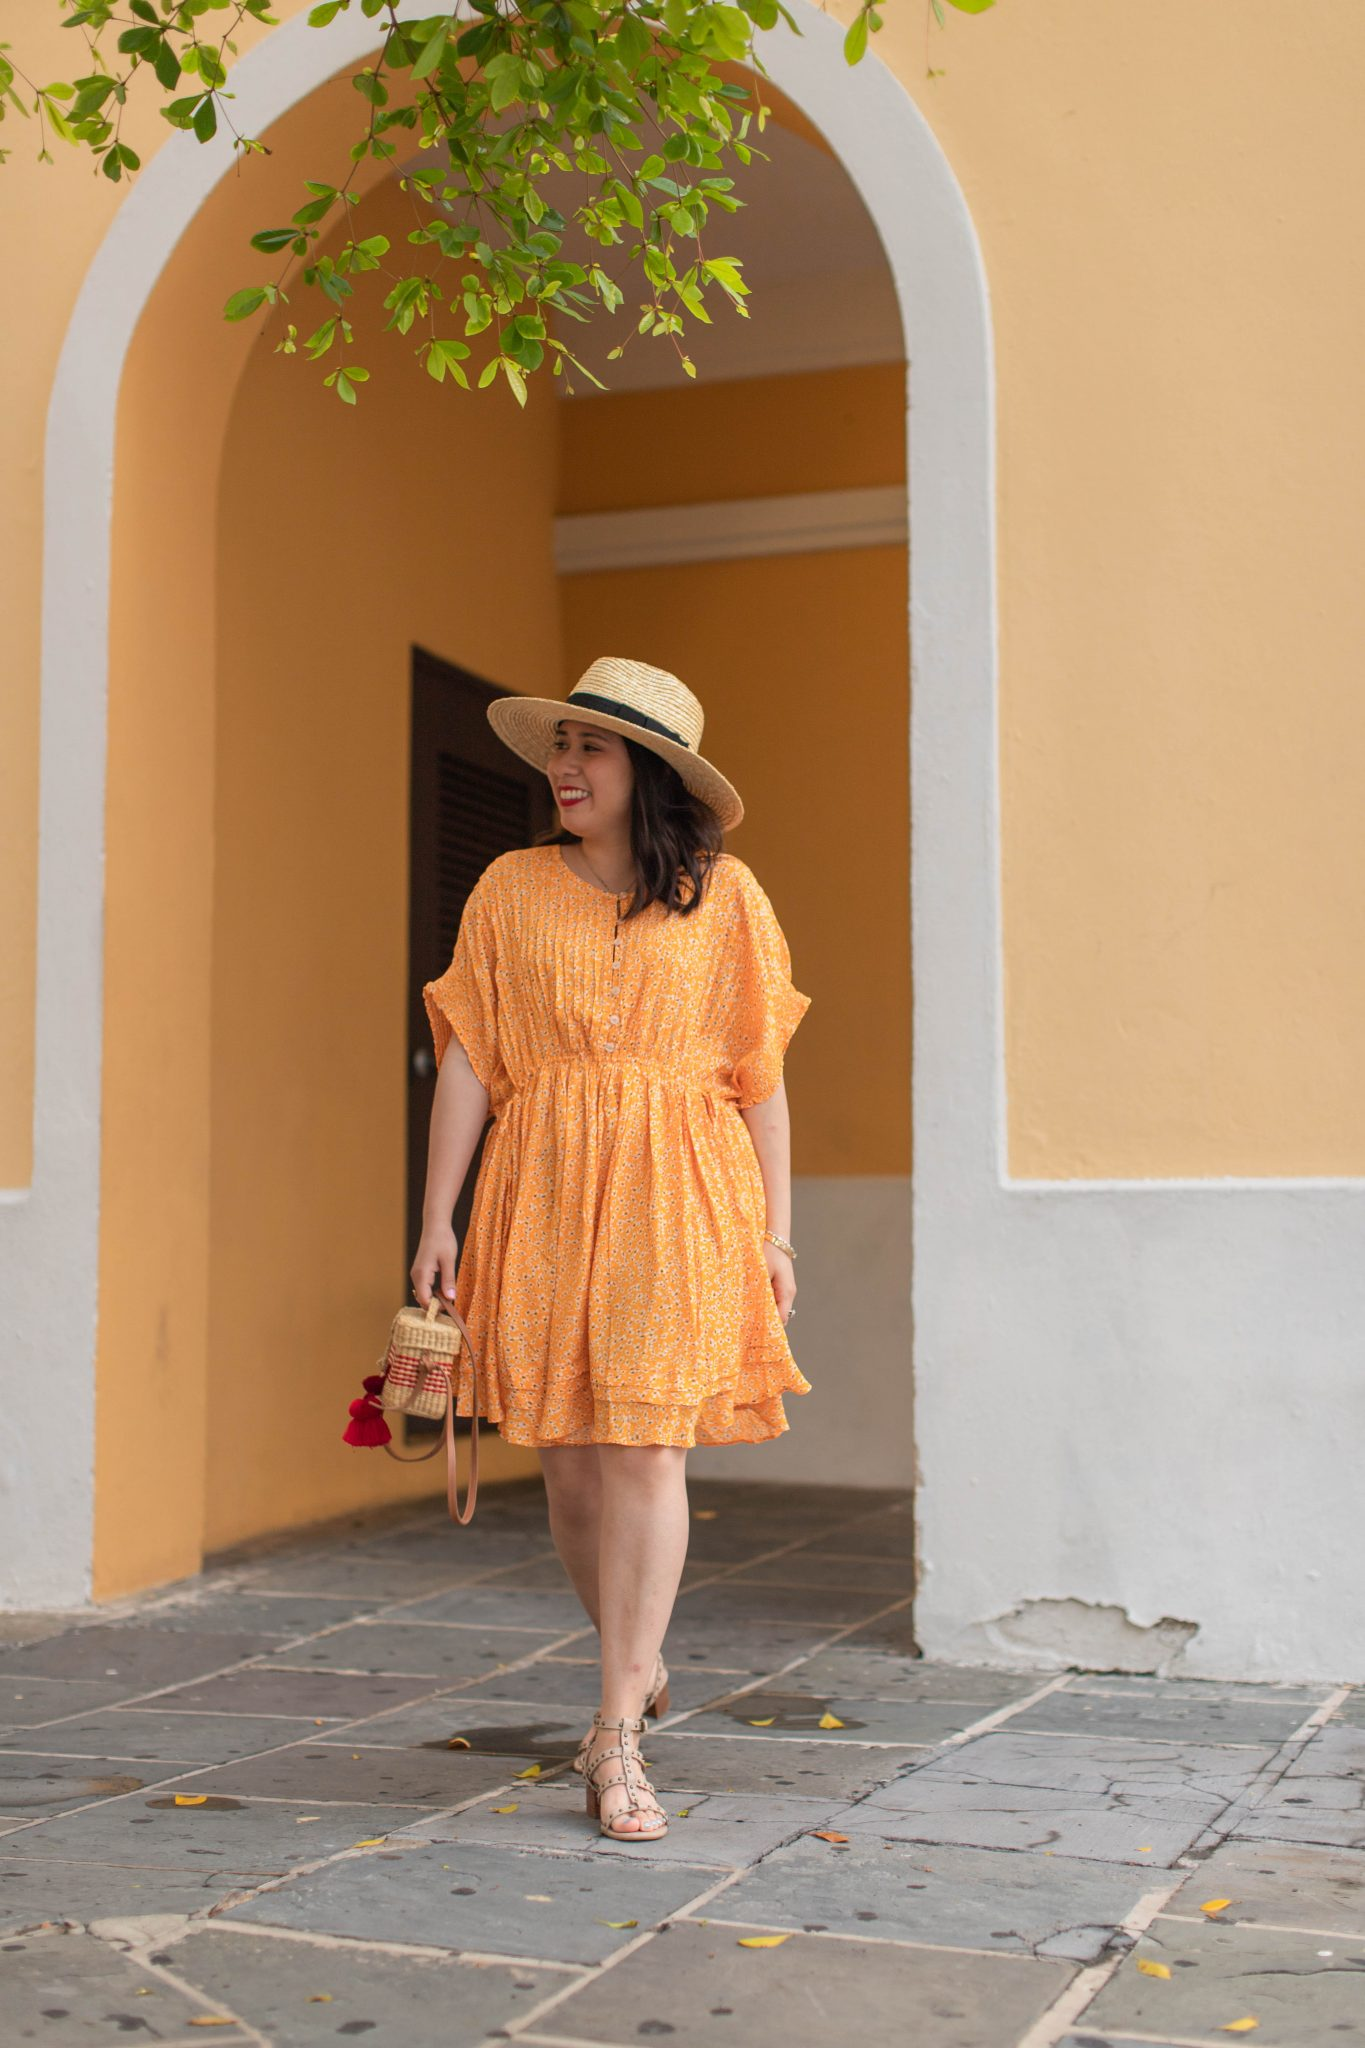 My 5 Personal Weekly Goals by popular New York life and style blog, Live Laugh Linda: image of a woman standing in front of a yellow building and wearing a Free People One Fine Day Mini Dress, ShopBop Nannacay Roge Small Crossbody Bag, Brixton Joanna Straw Hat and Sole Society shoes.